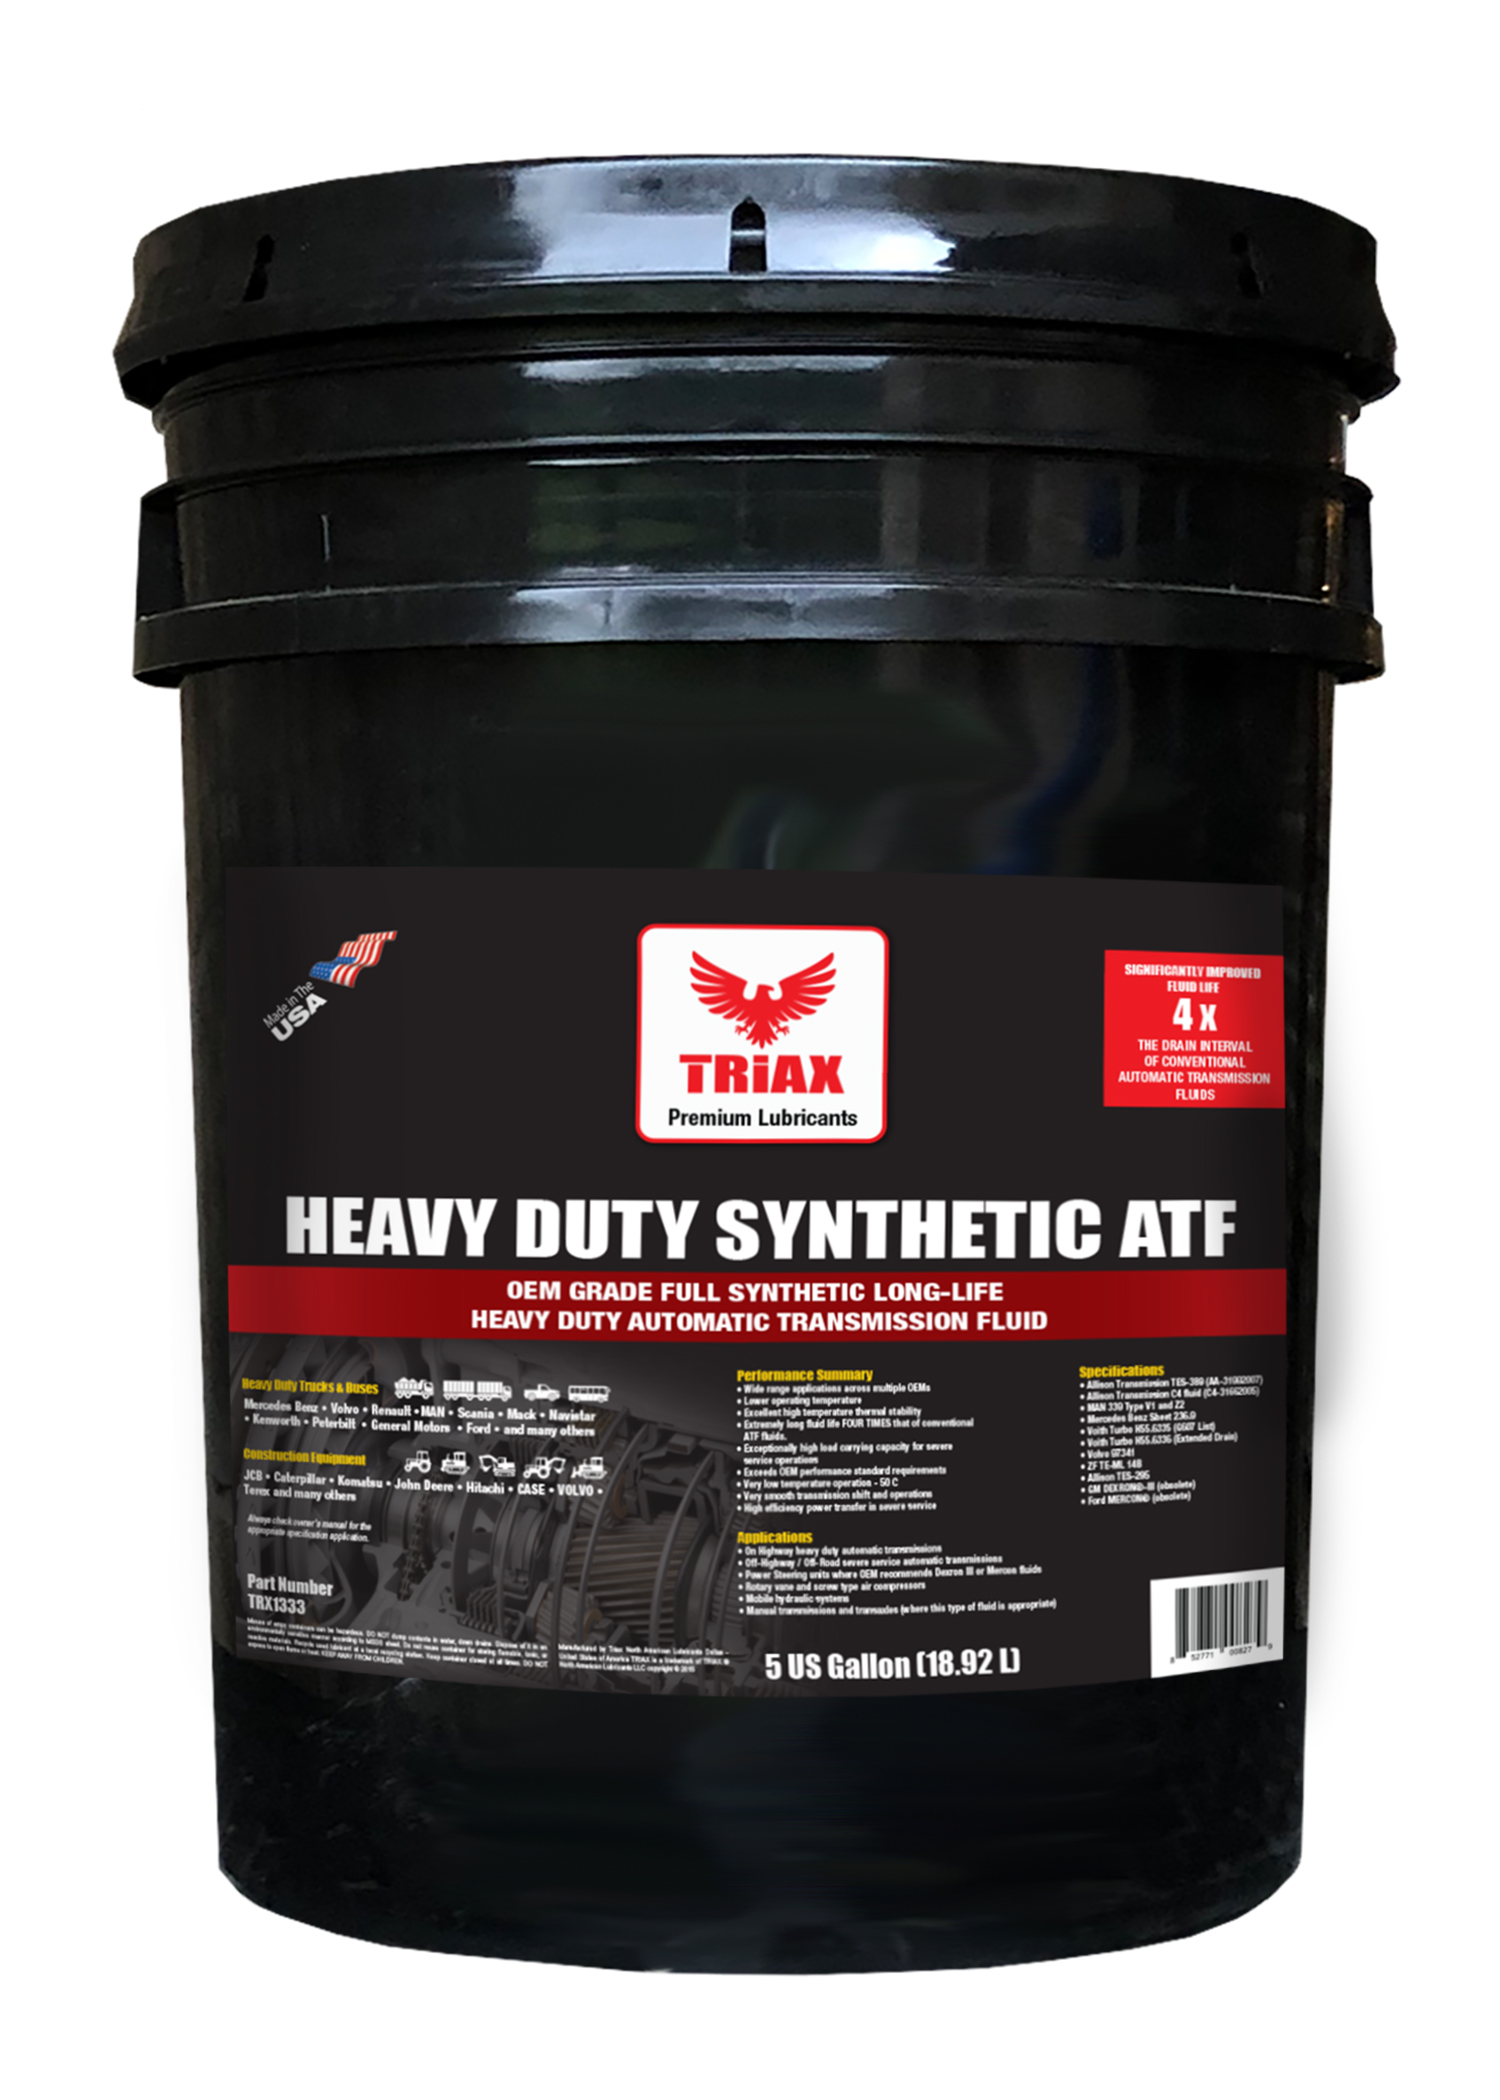 TRIAX HEAVY DUTY SYNTHETIC ATF